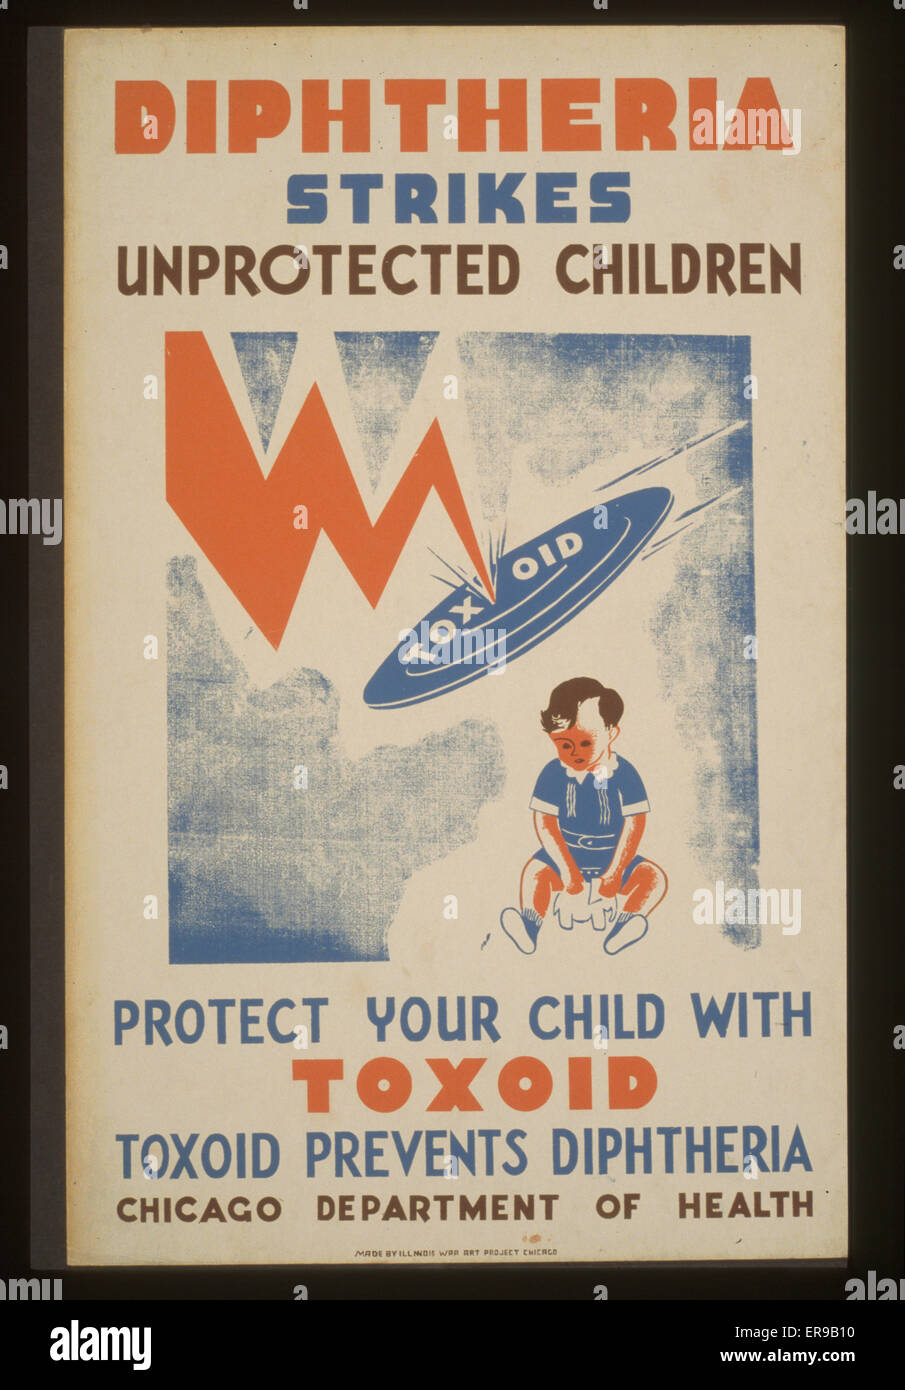 Diphtheria strikes unprotected children Protect your child with toxoid - Toxoid prevents diptheria : Chicago Department - Stock Image